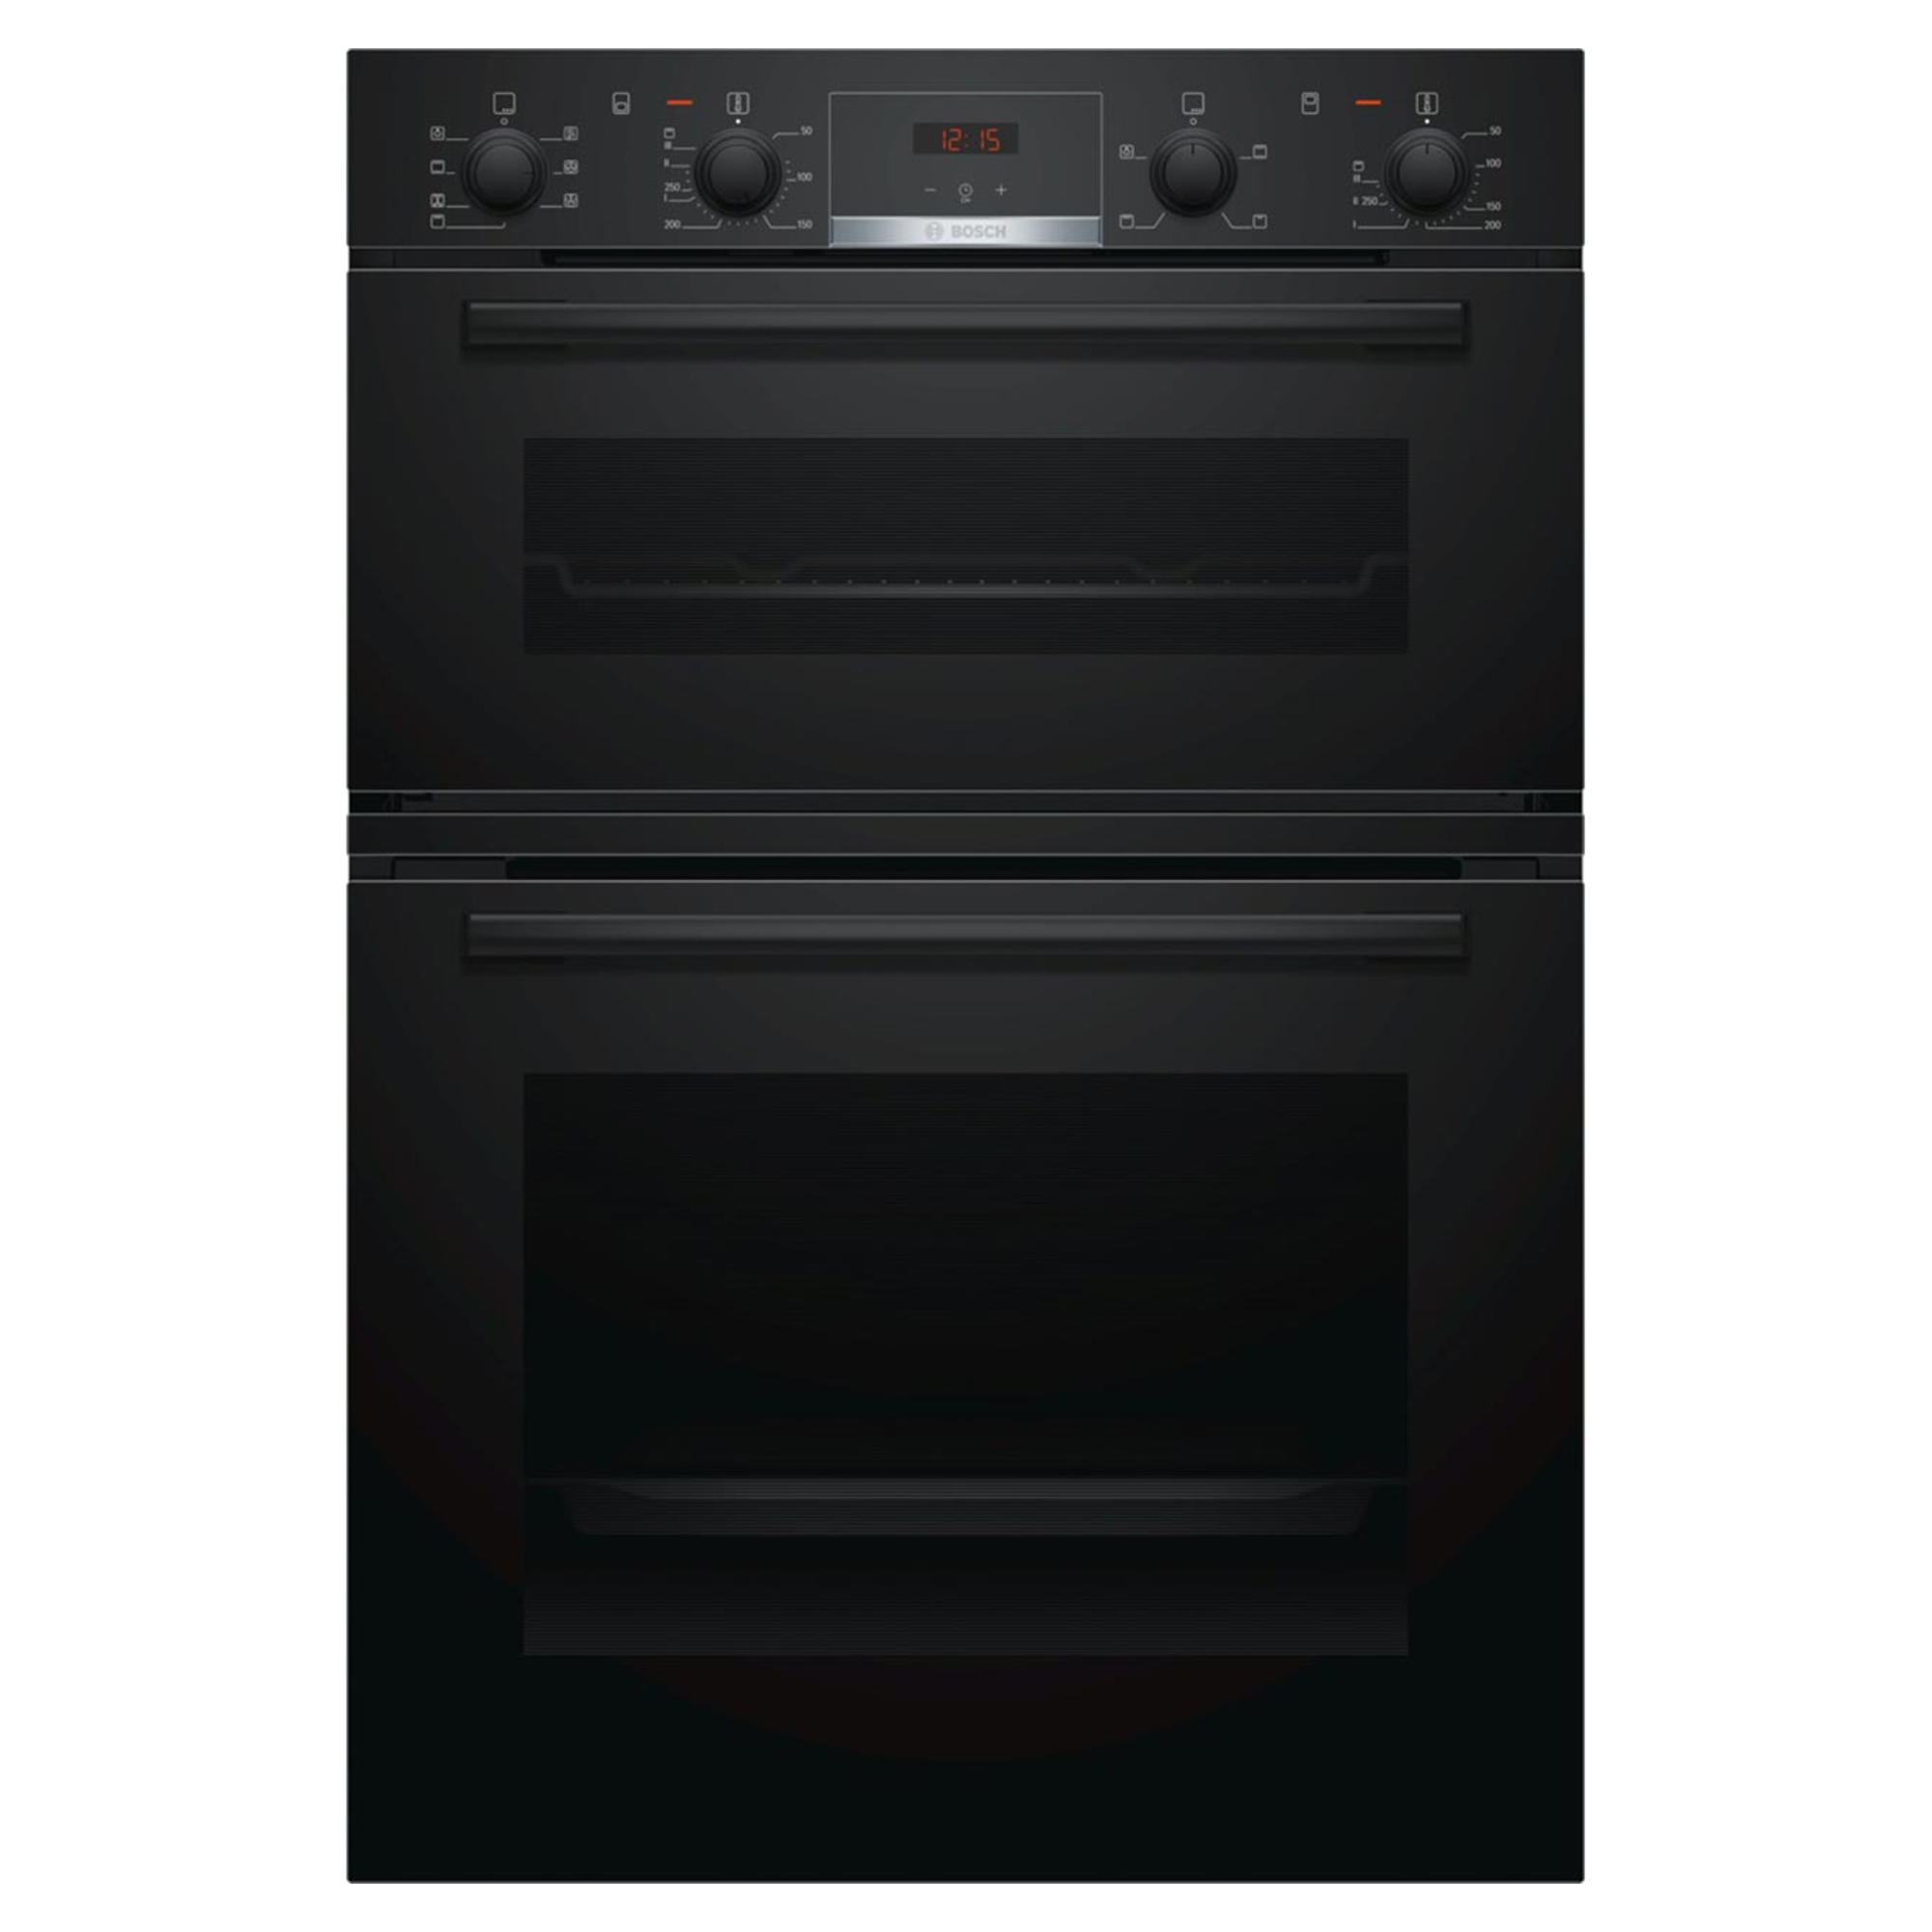 Bosch Serie 4 MBS533BB0B Built-In Electric Double Oven